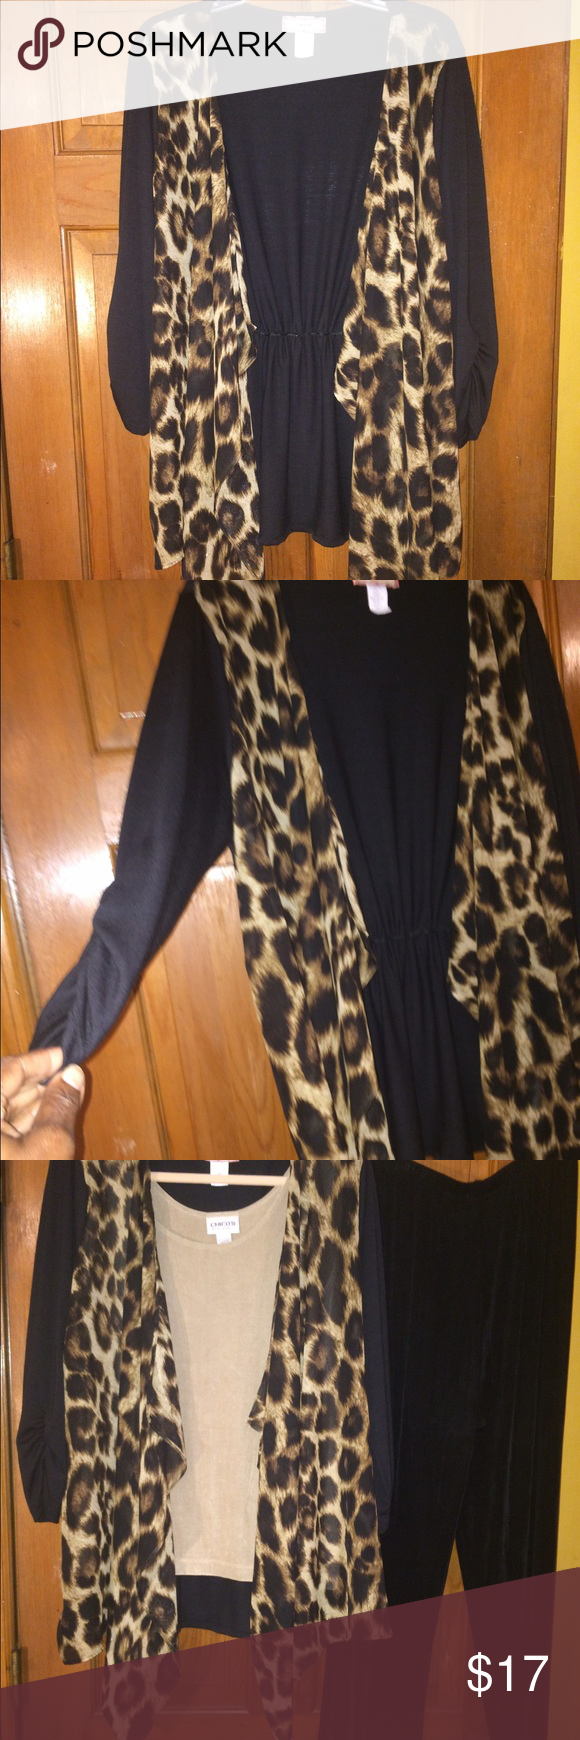 JUST REDUCED!!EUC, thisleopard & Black  Cardigan. EUC, this soft & Sassy leopard & Black  Cardigan, will help get your wardrobe ready for Fall, looks great with dress up or down, great look with jeans, you have to get this piece. C'est La Vie Sweaters Cardigans